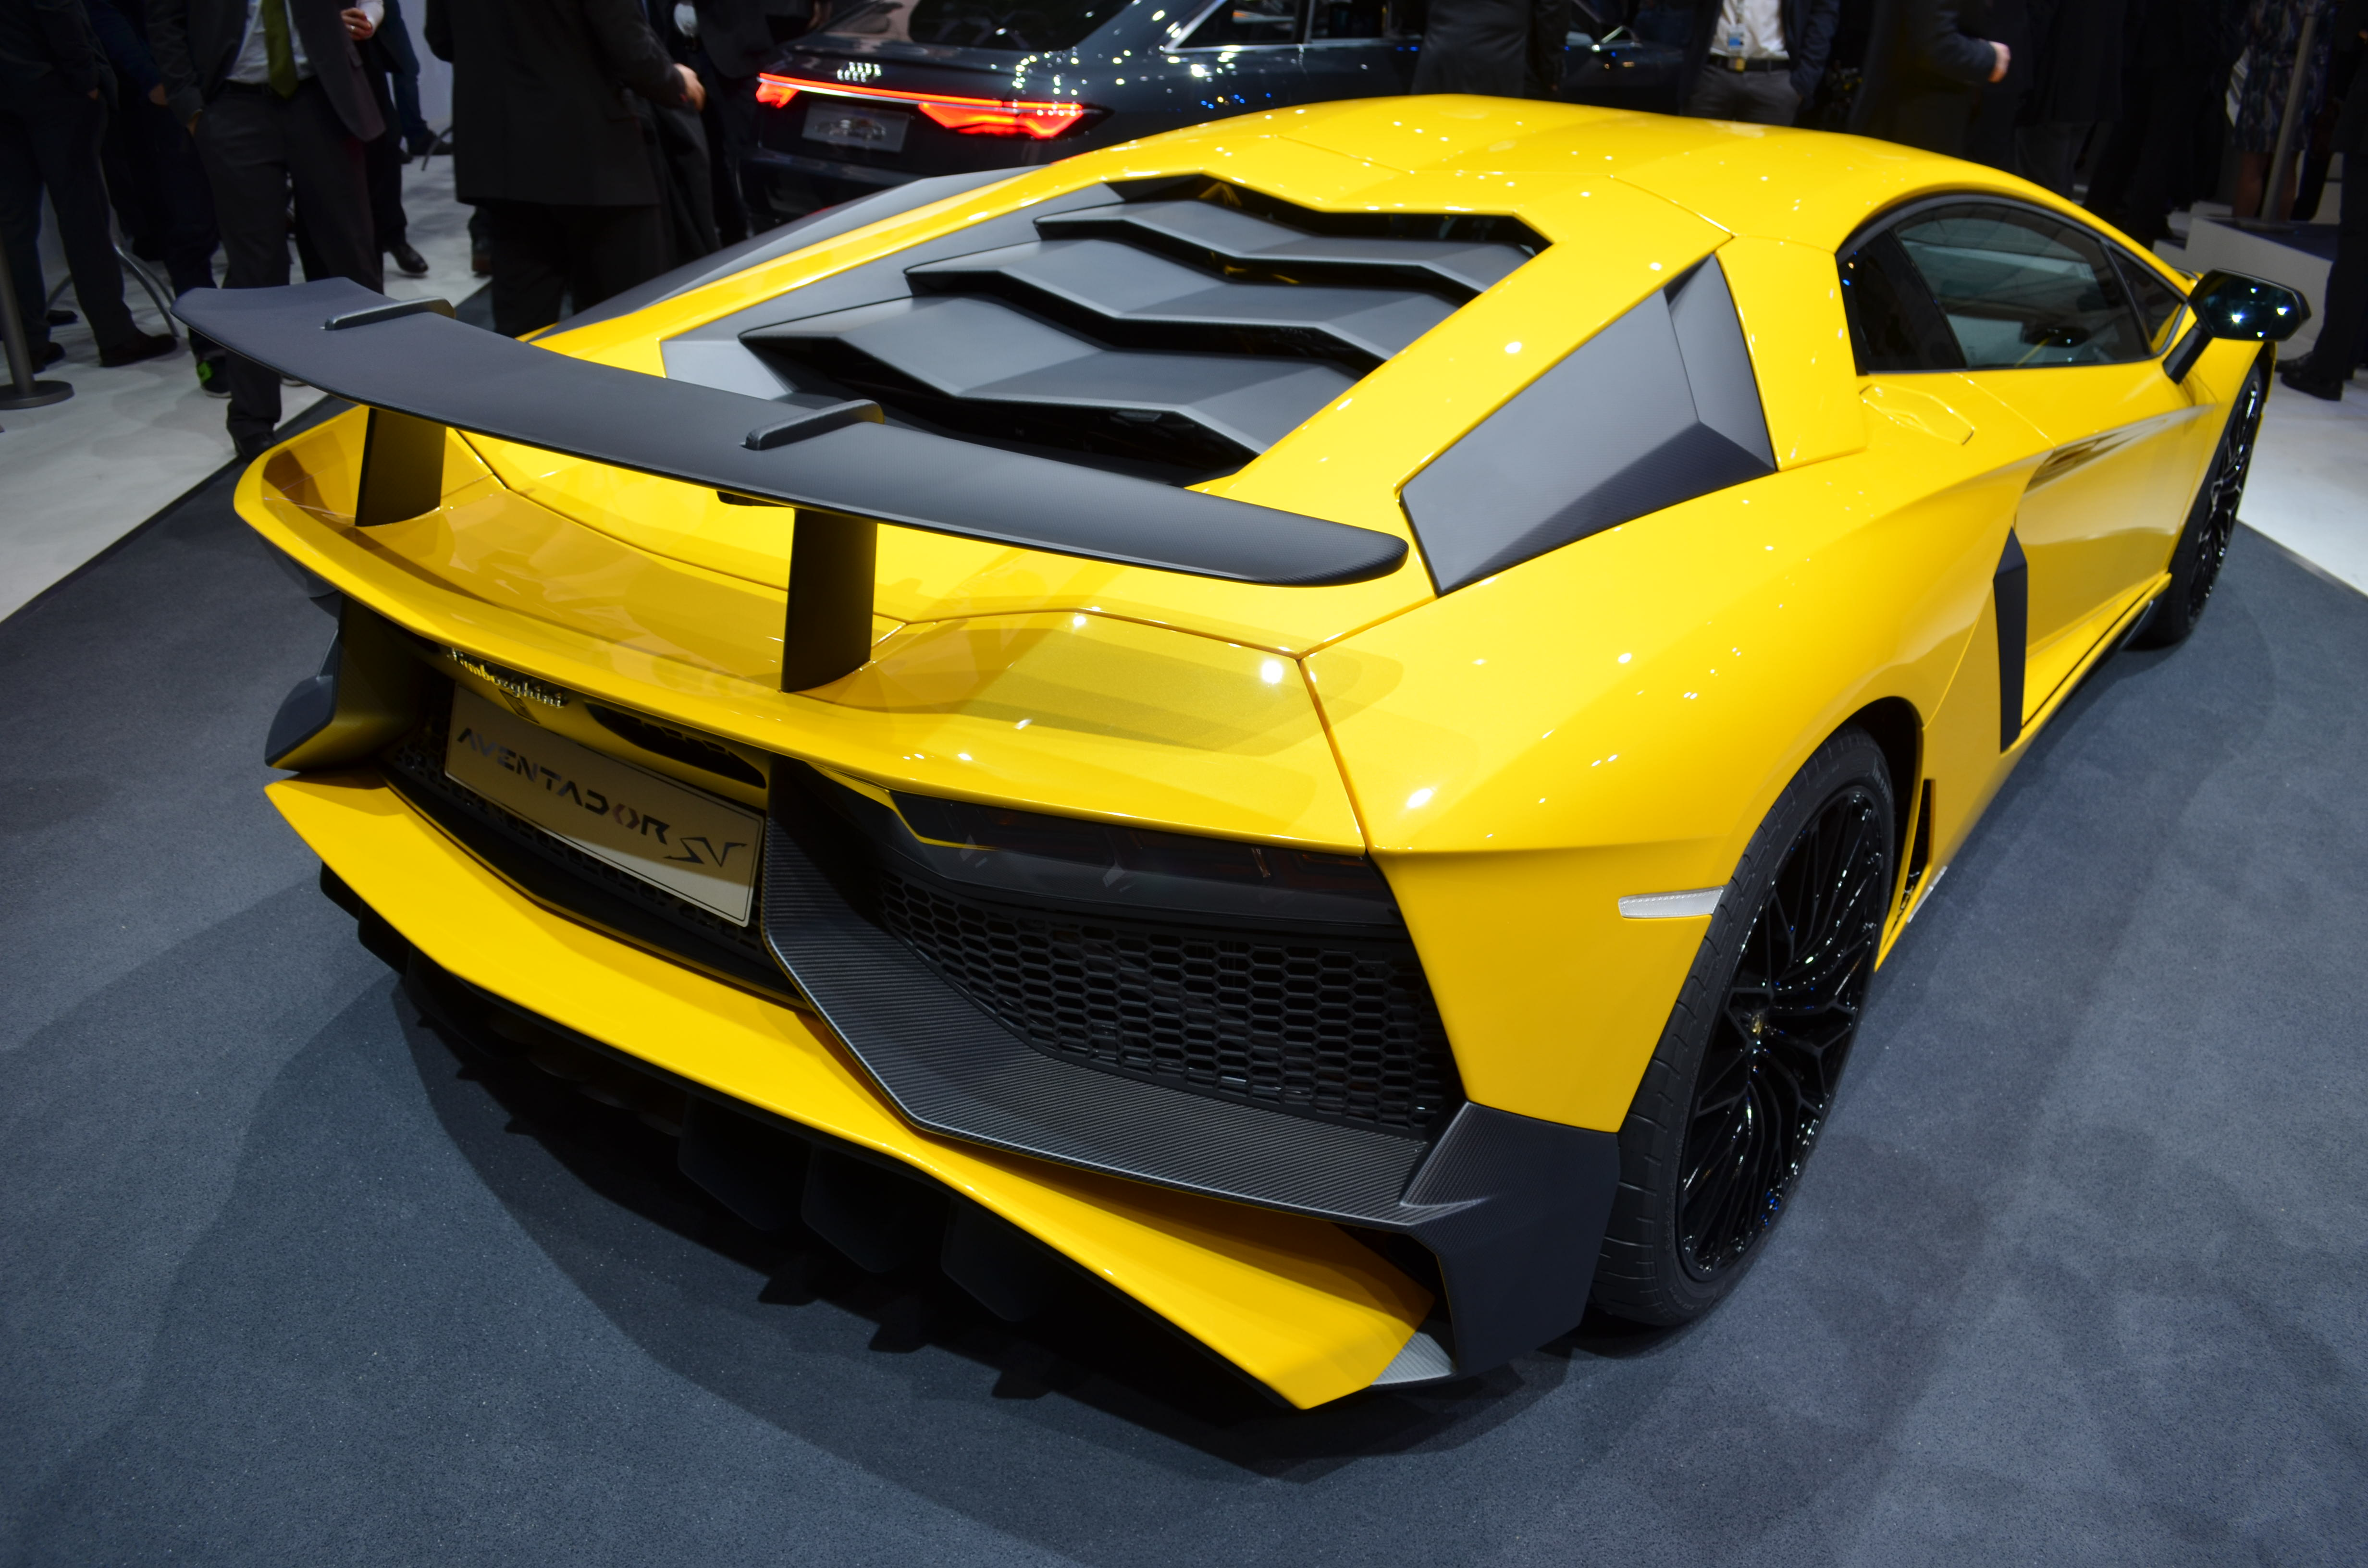 was s face aventador johannesburg sale convertible demo and the see new lamborghini roadster hurac it in unit angry huracan performante or should n around february unveiled yesterday for a we shows launch march africa confirmed south